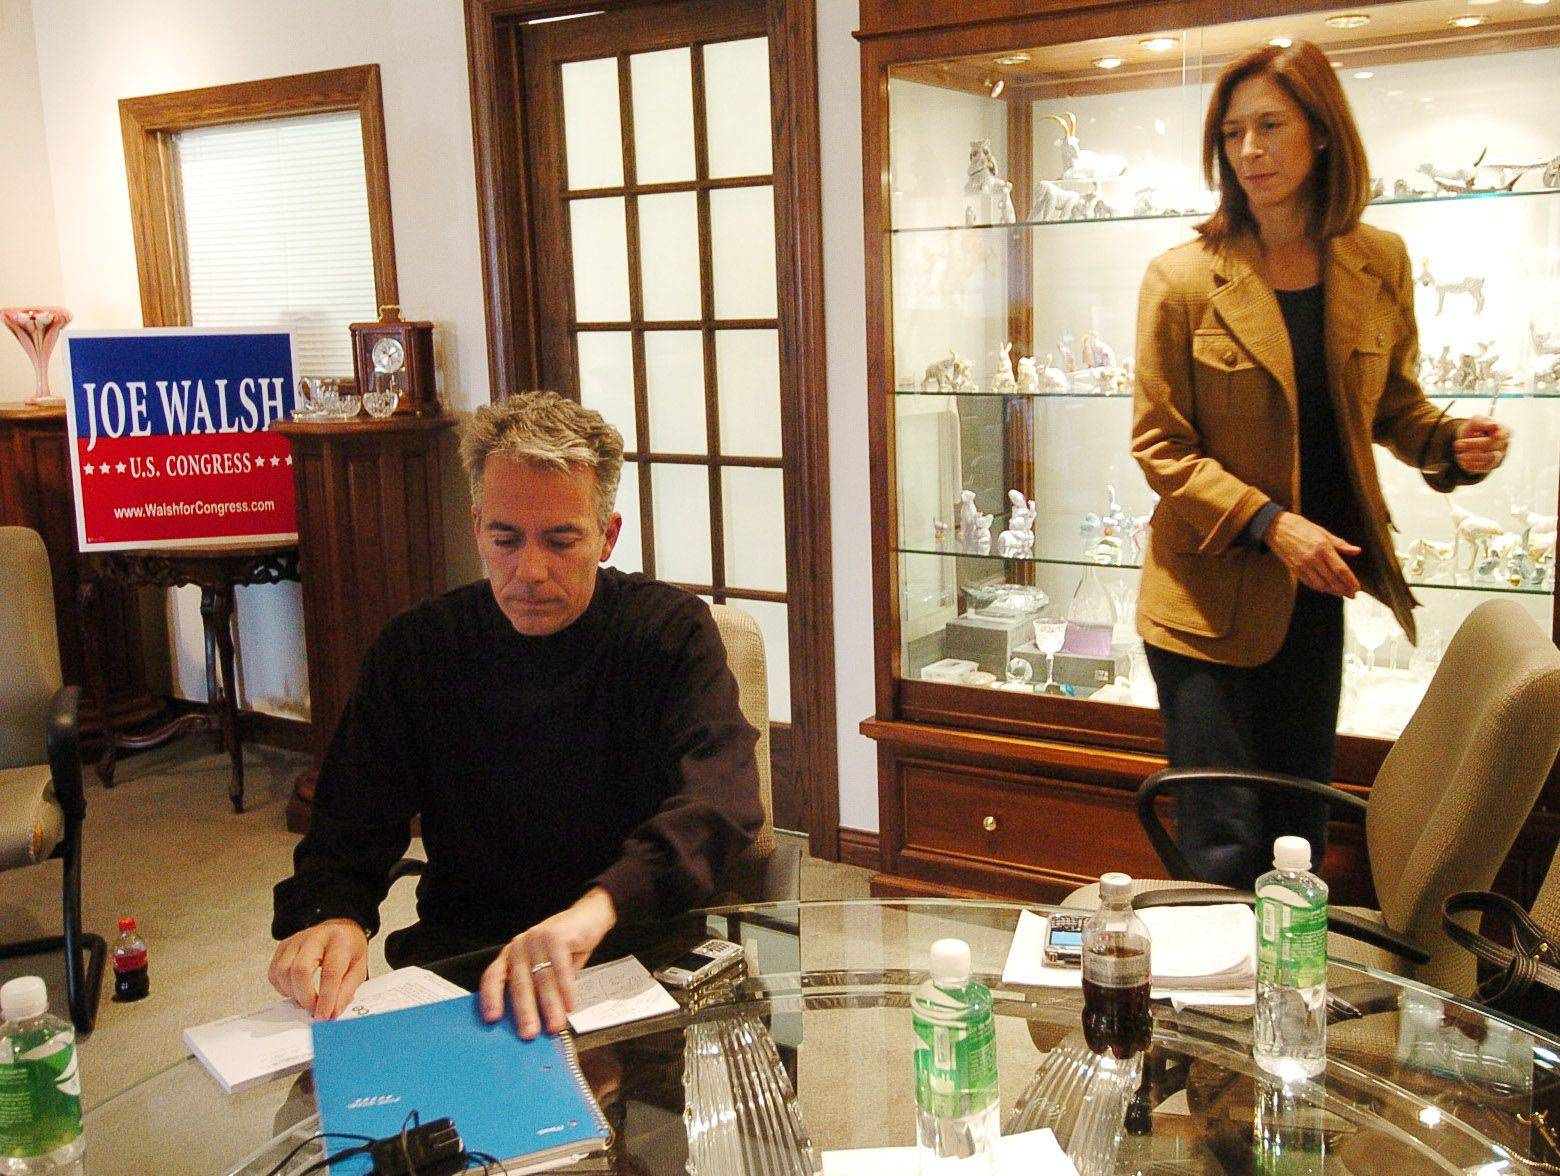 8th District candidate Joe Walsh works out of a makeshift office provided by M.J. Miller & Co. in Barrington on the day after the election with his wife Helene.